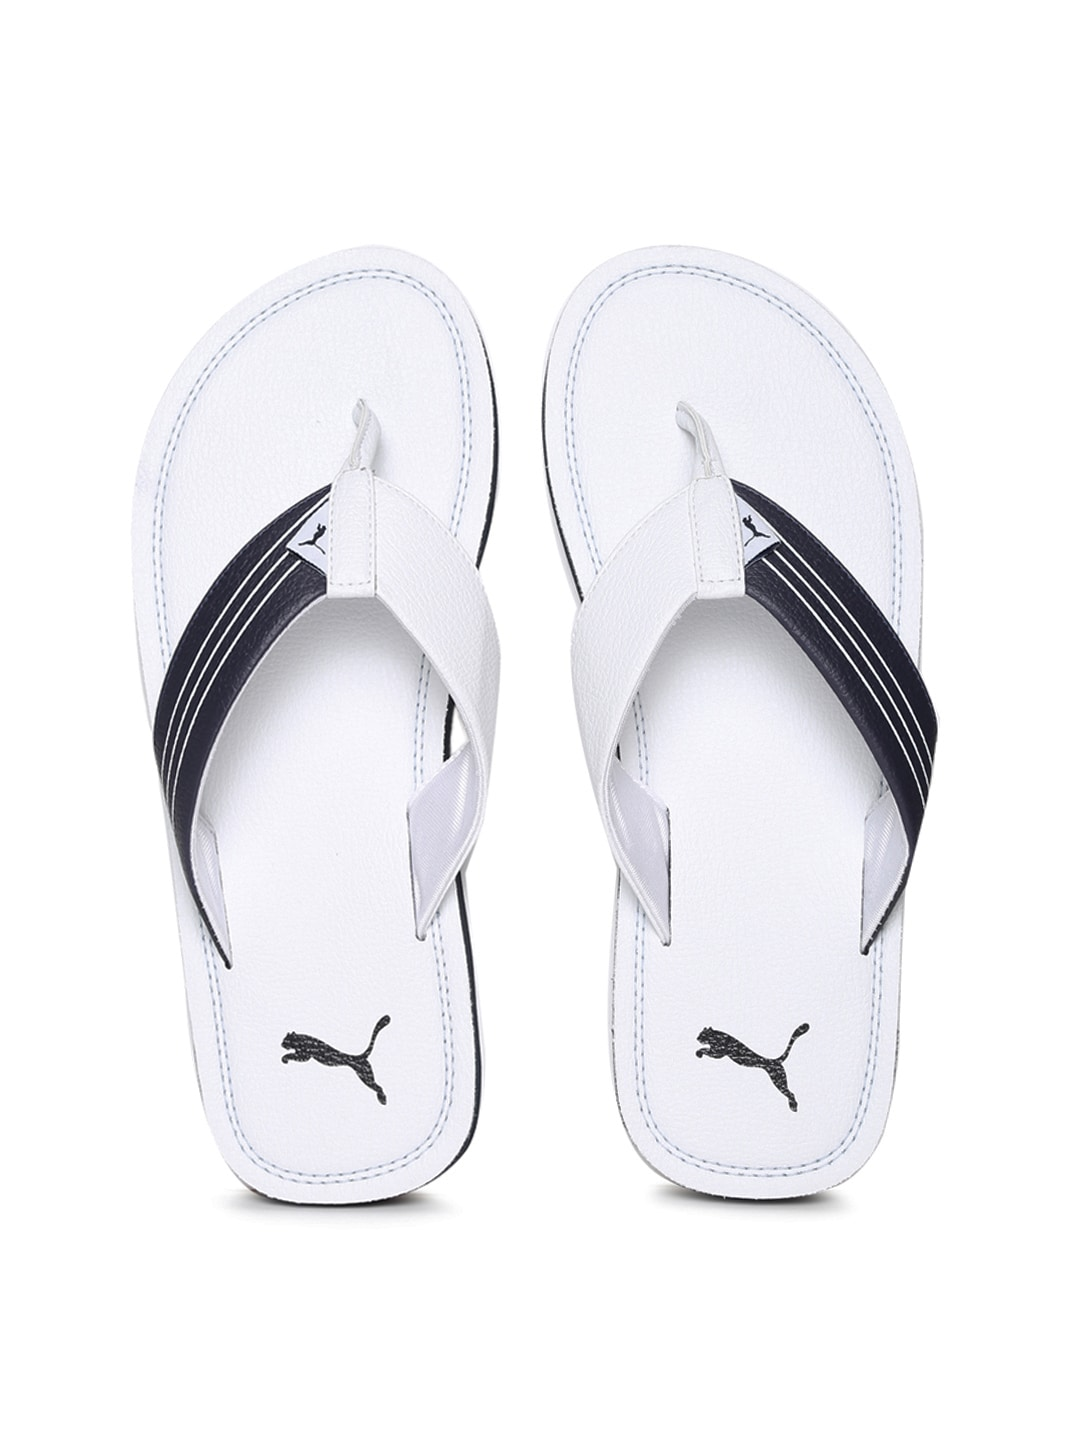 Puma Men White & Navy Blink Duo IDP Flip-Flops image